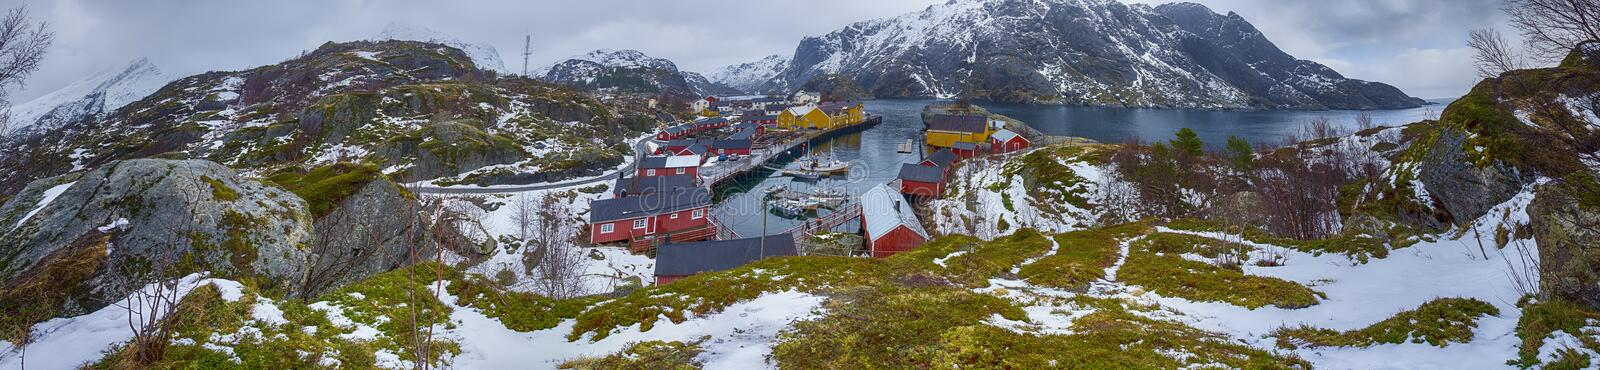 Download Panoramic View Of Beautiful Snowy Nusfjord Village Taken From High Hill At Lofoten Islands Stock Image - Image of ideas, creek: 97369961